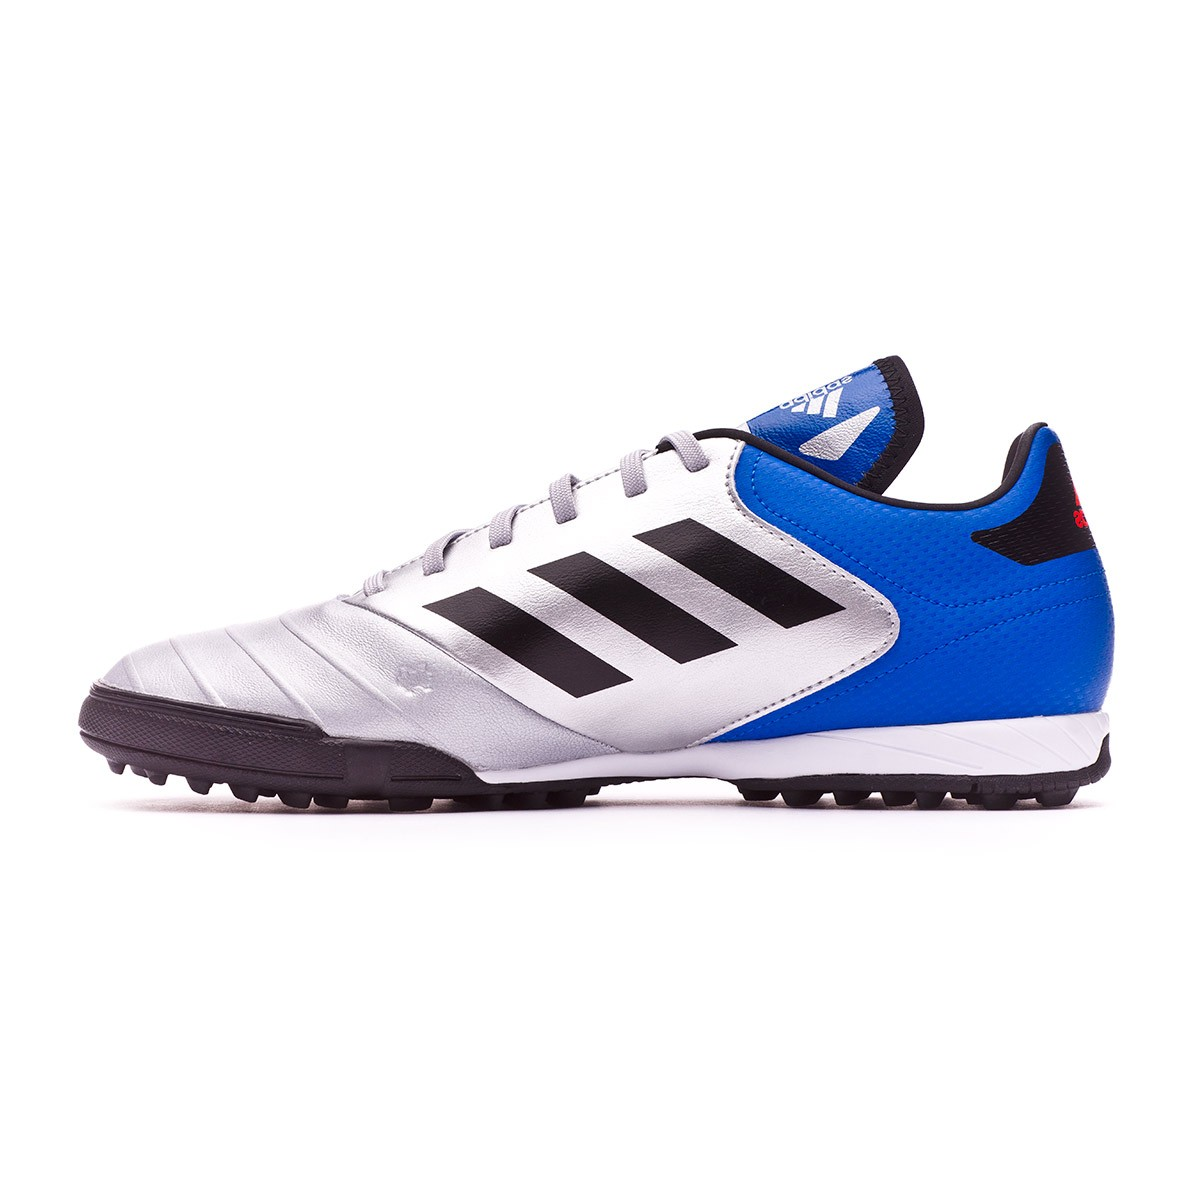 wholesale dealer 0863c b75cc Football Boot adidas Copa Tango 18.3 Turf Silver metallic-Core  black-Football blue - Leaked soccer